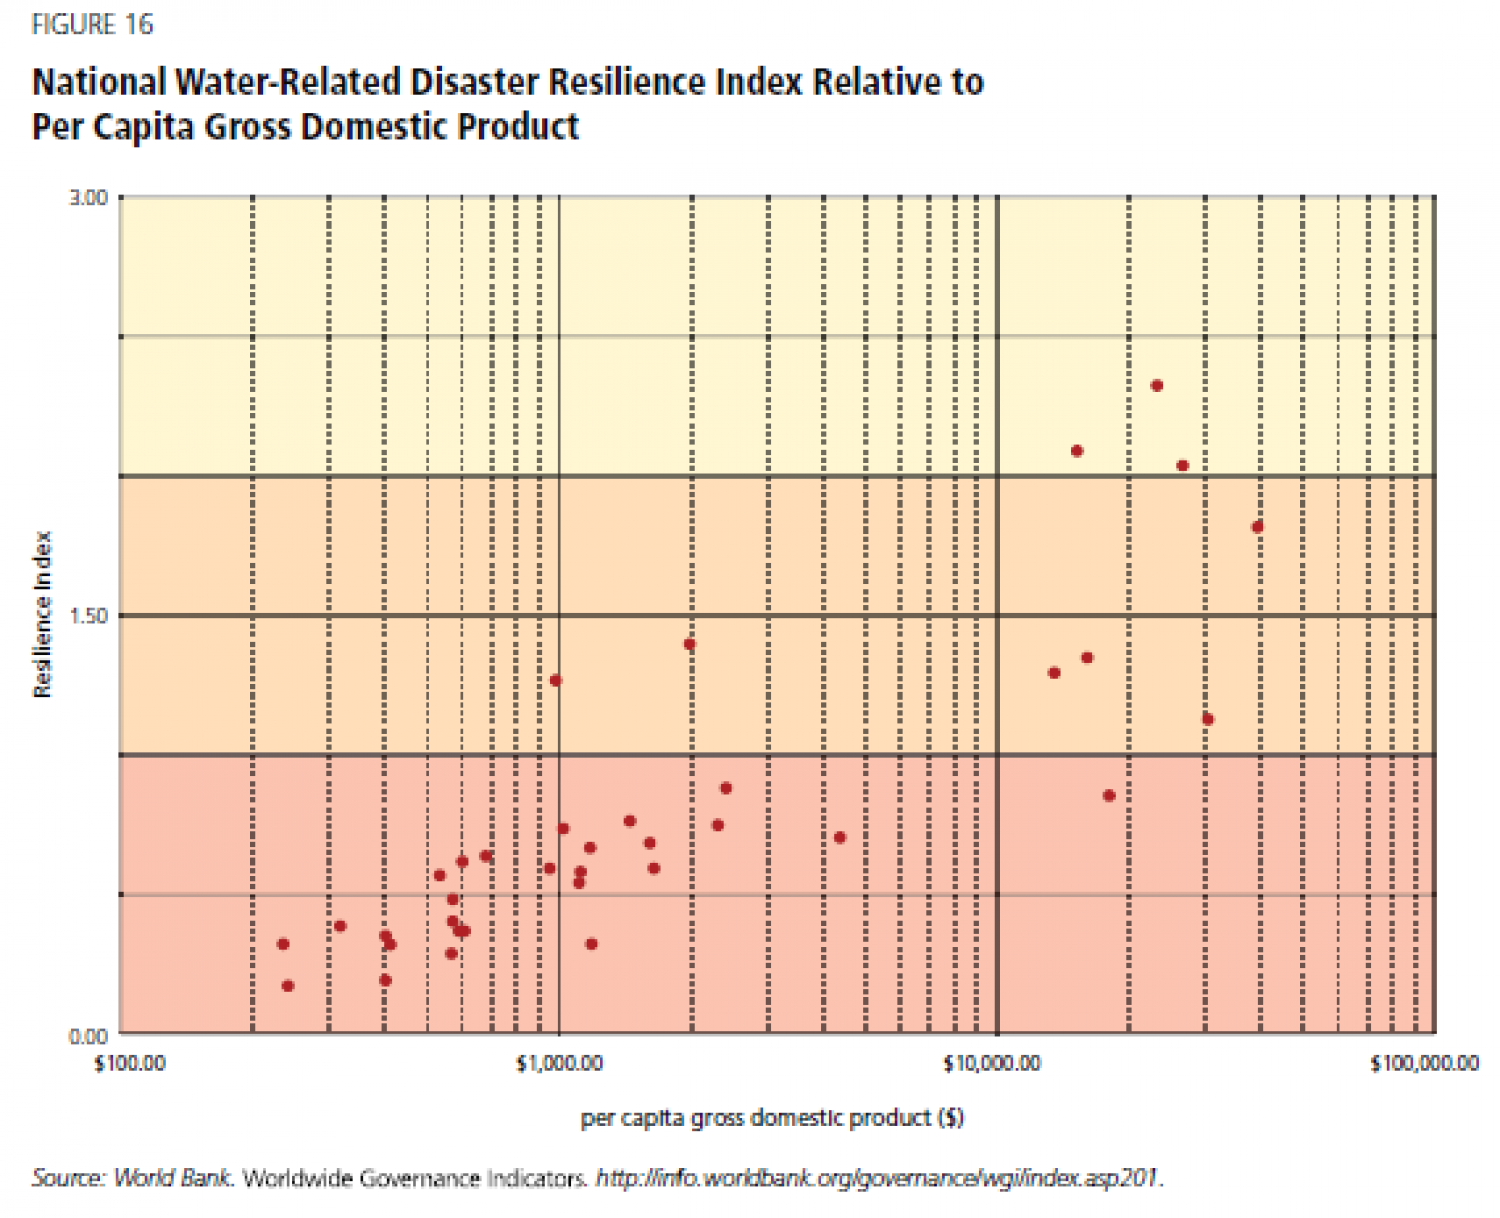 National Water-Related Disaster Resilience Index Relative to Per Capita Gross Domestic Product Infographic